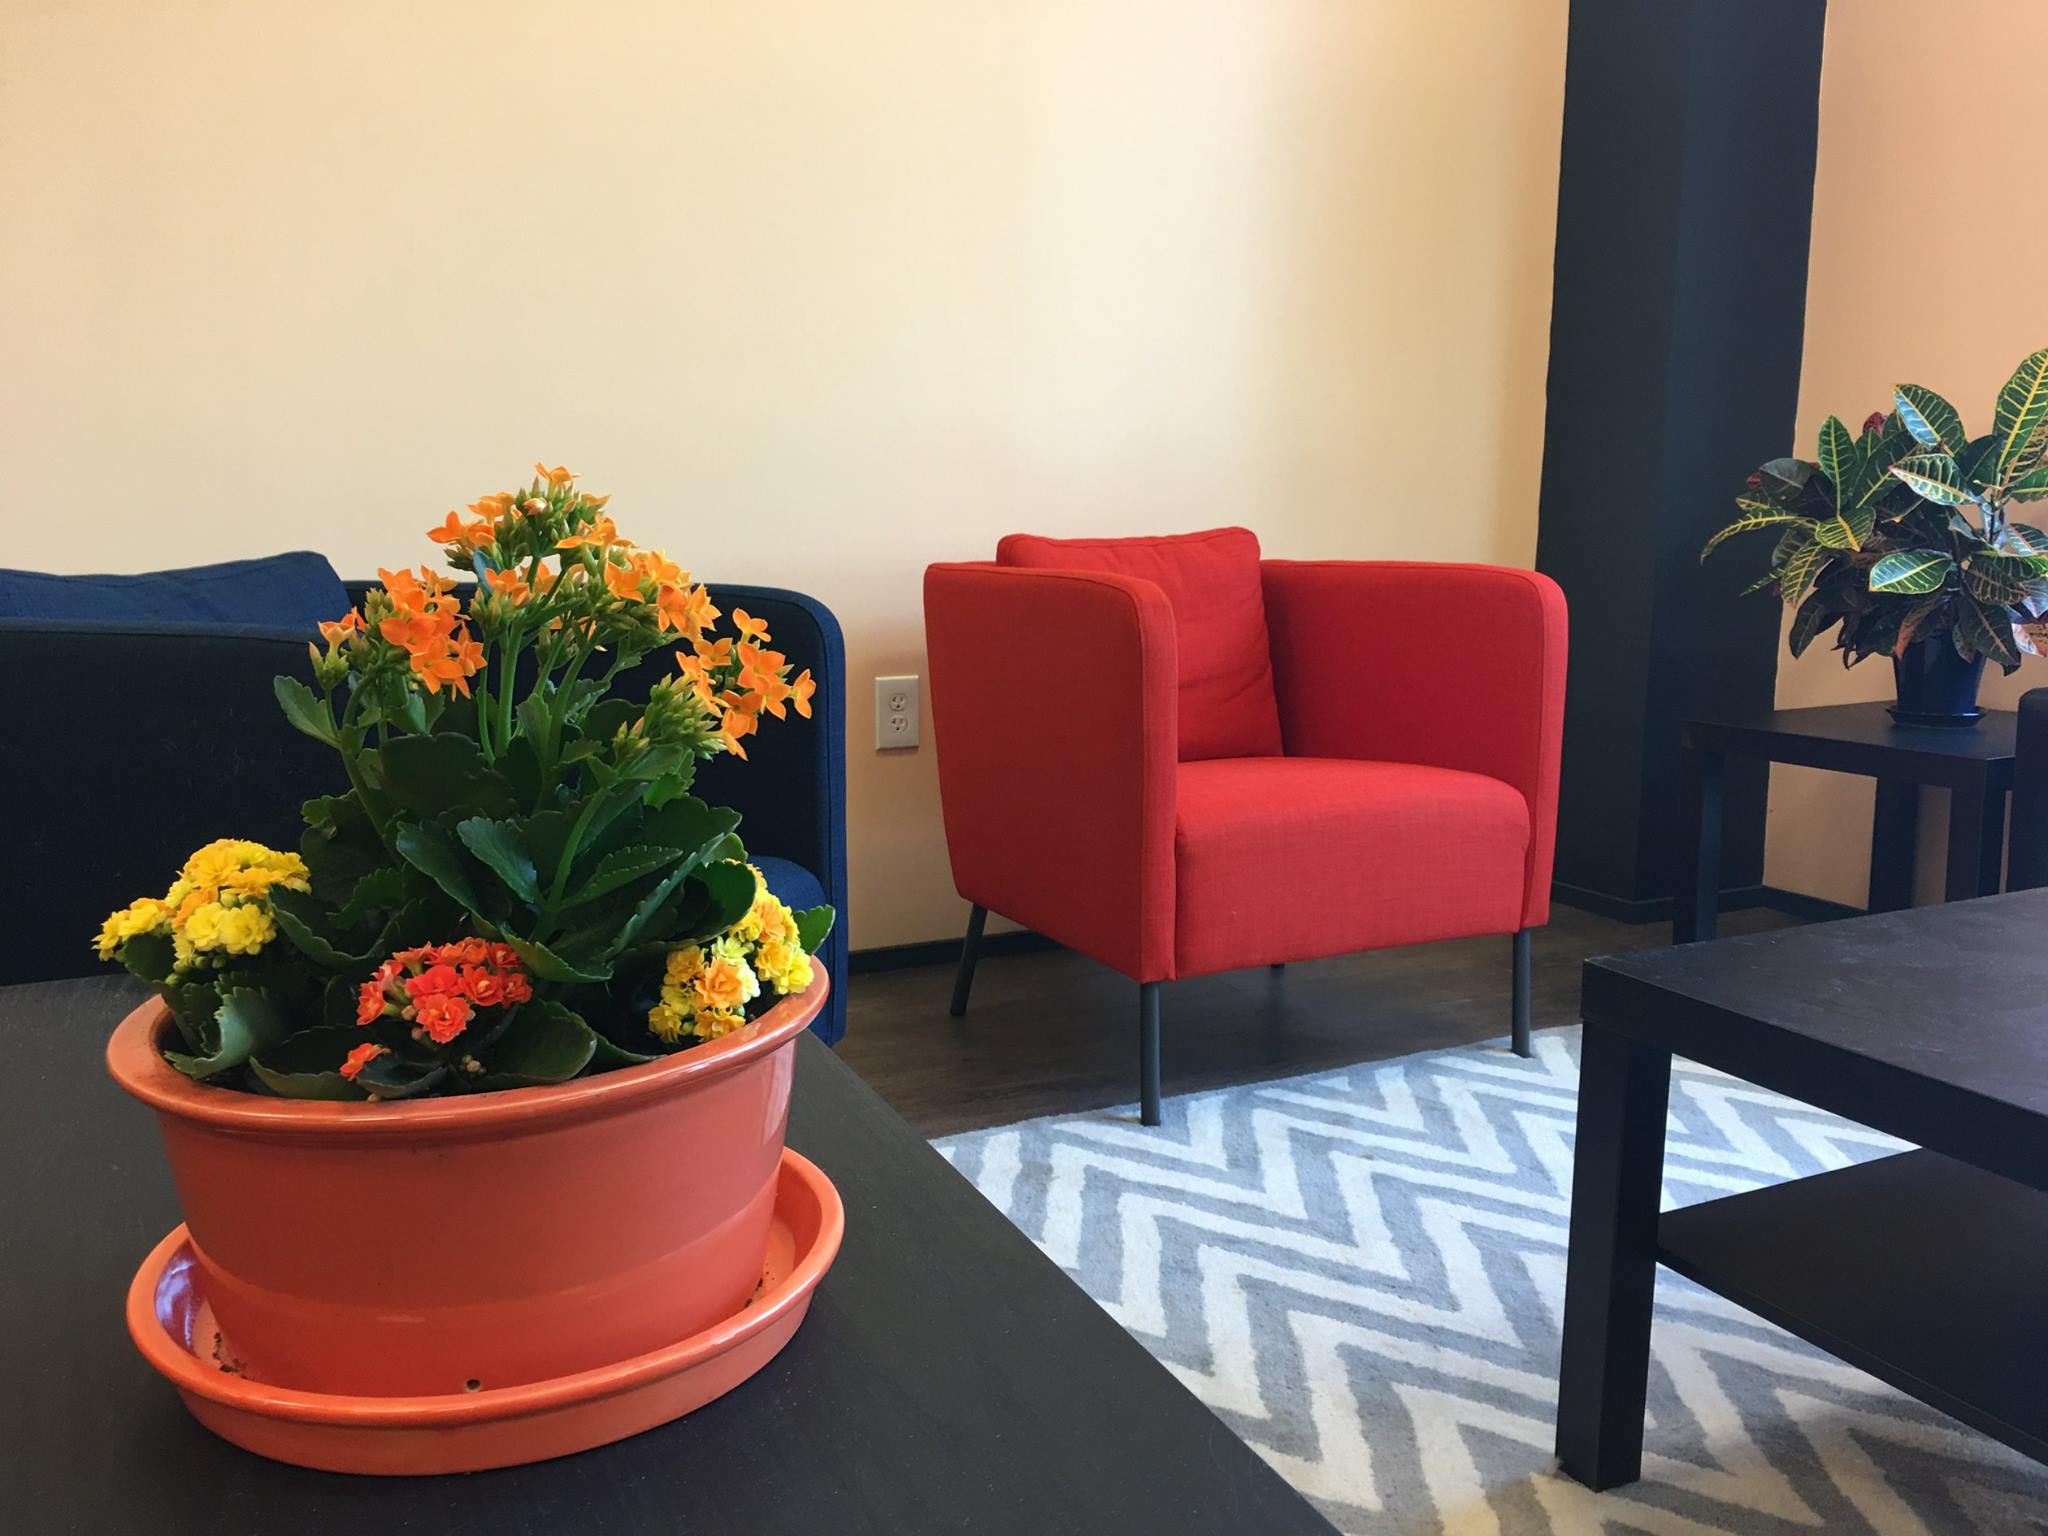 Waiting Area With Flowers.jpg